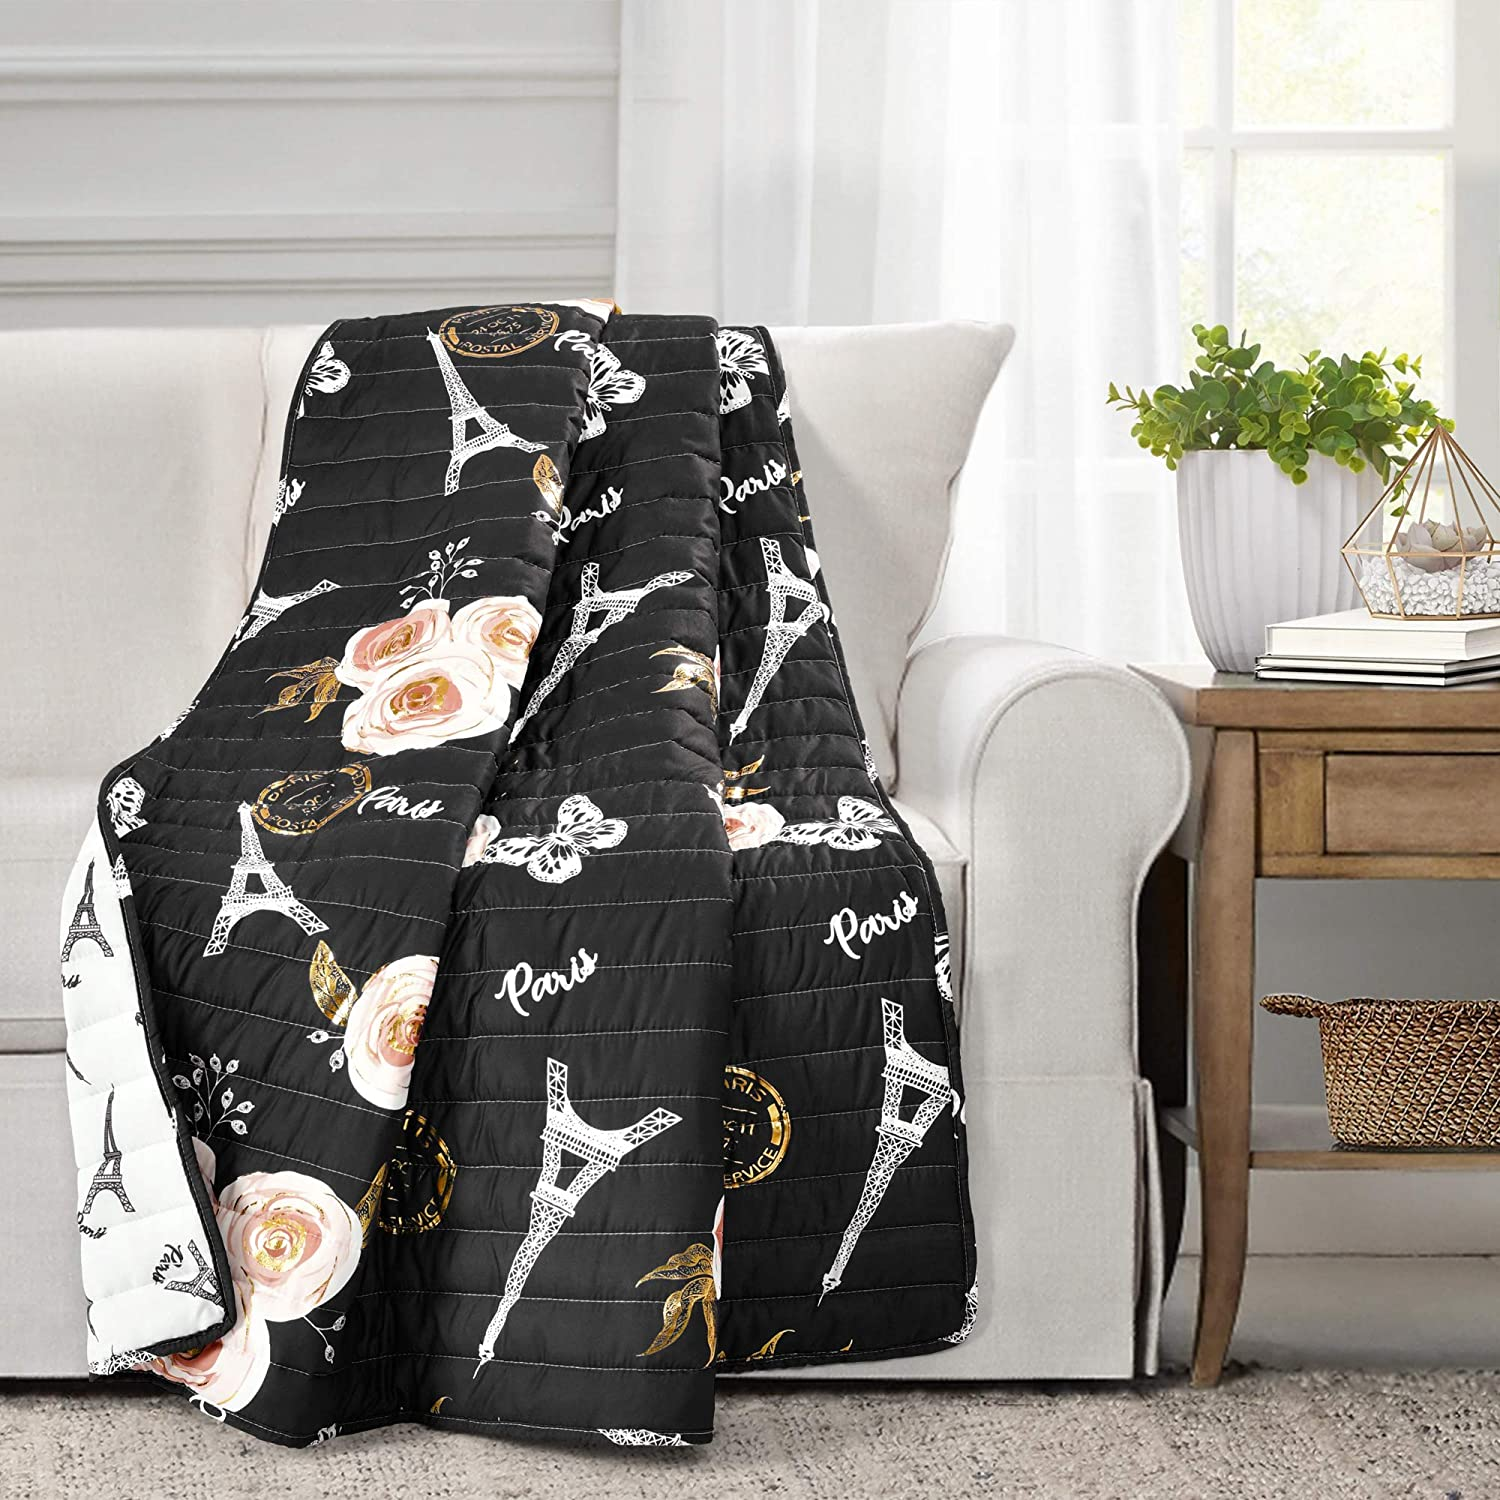 """Lush Decor, Black Reversible Throw Blanket, Vintage Print with Paris-Themed Design, Soft Polyester Fabric, Cozy Couch and Bed Accent (50"""" x 60"""